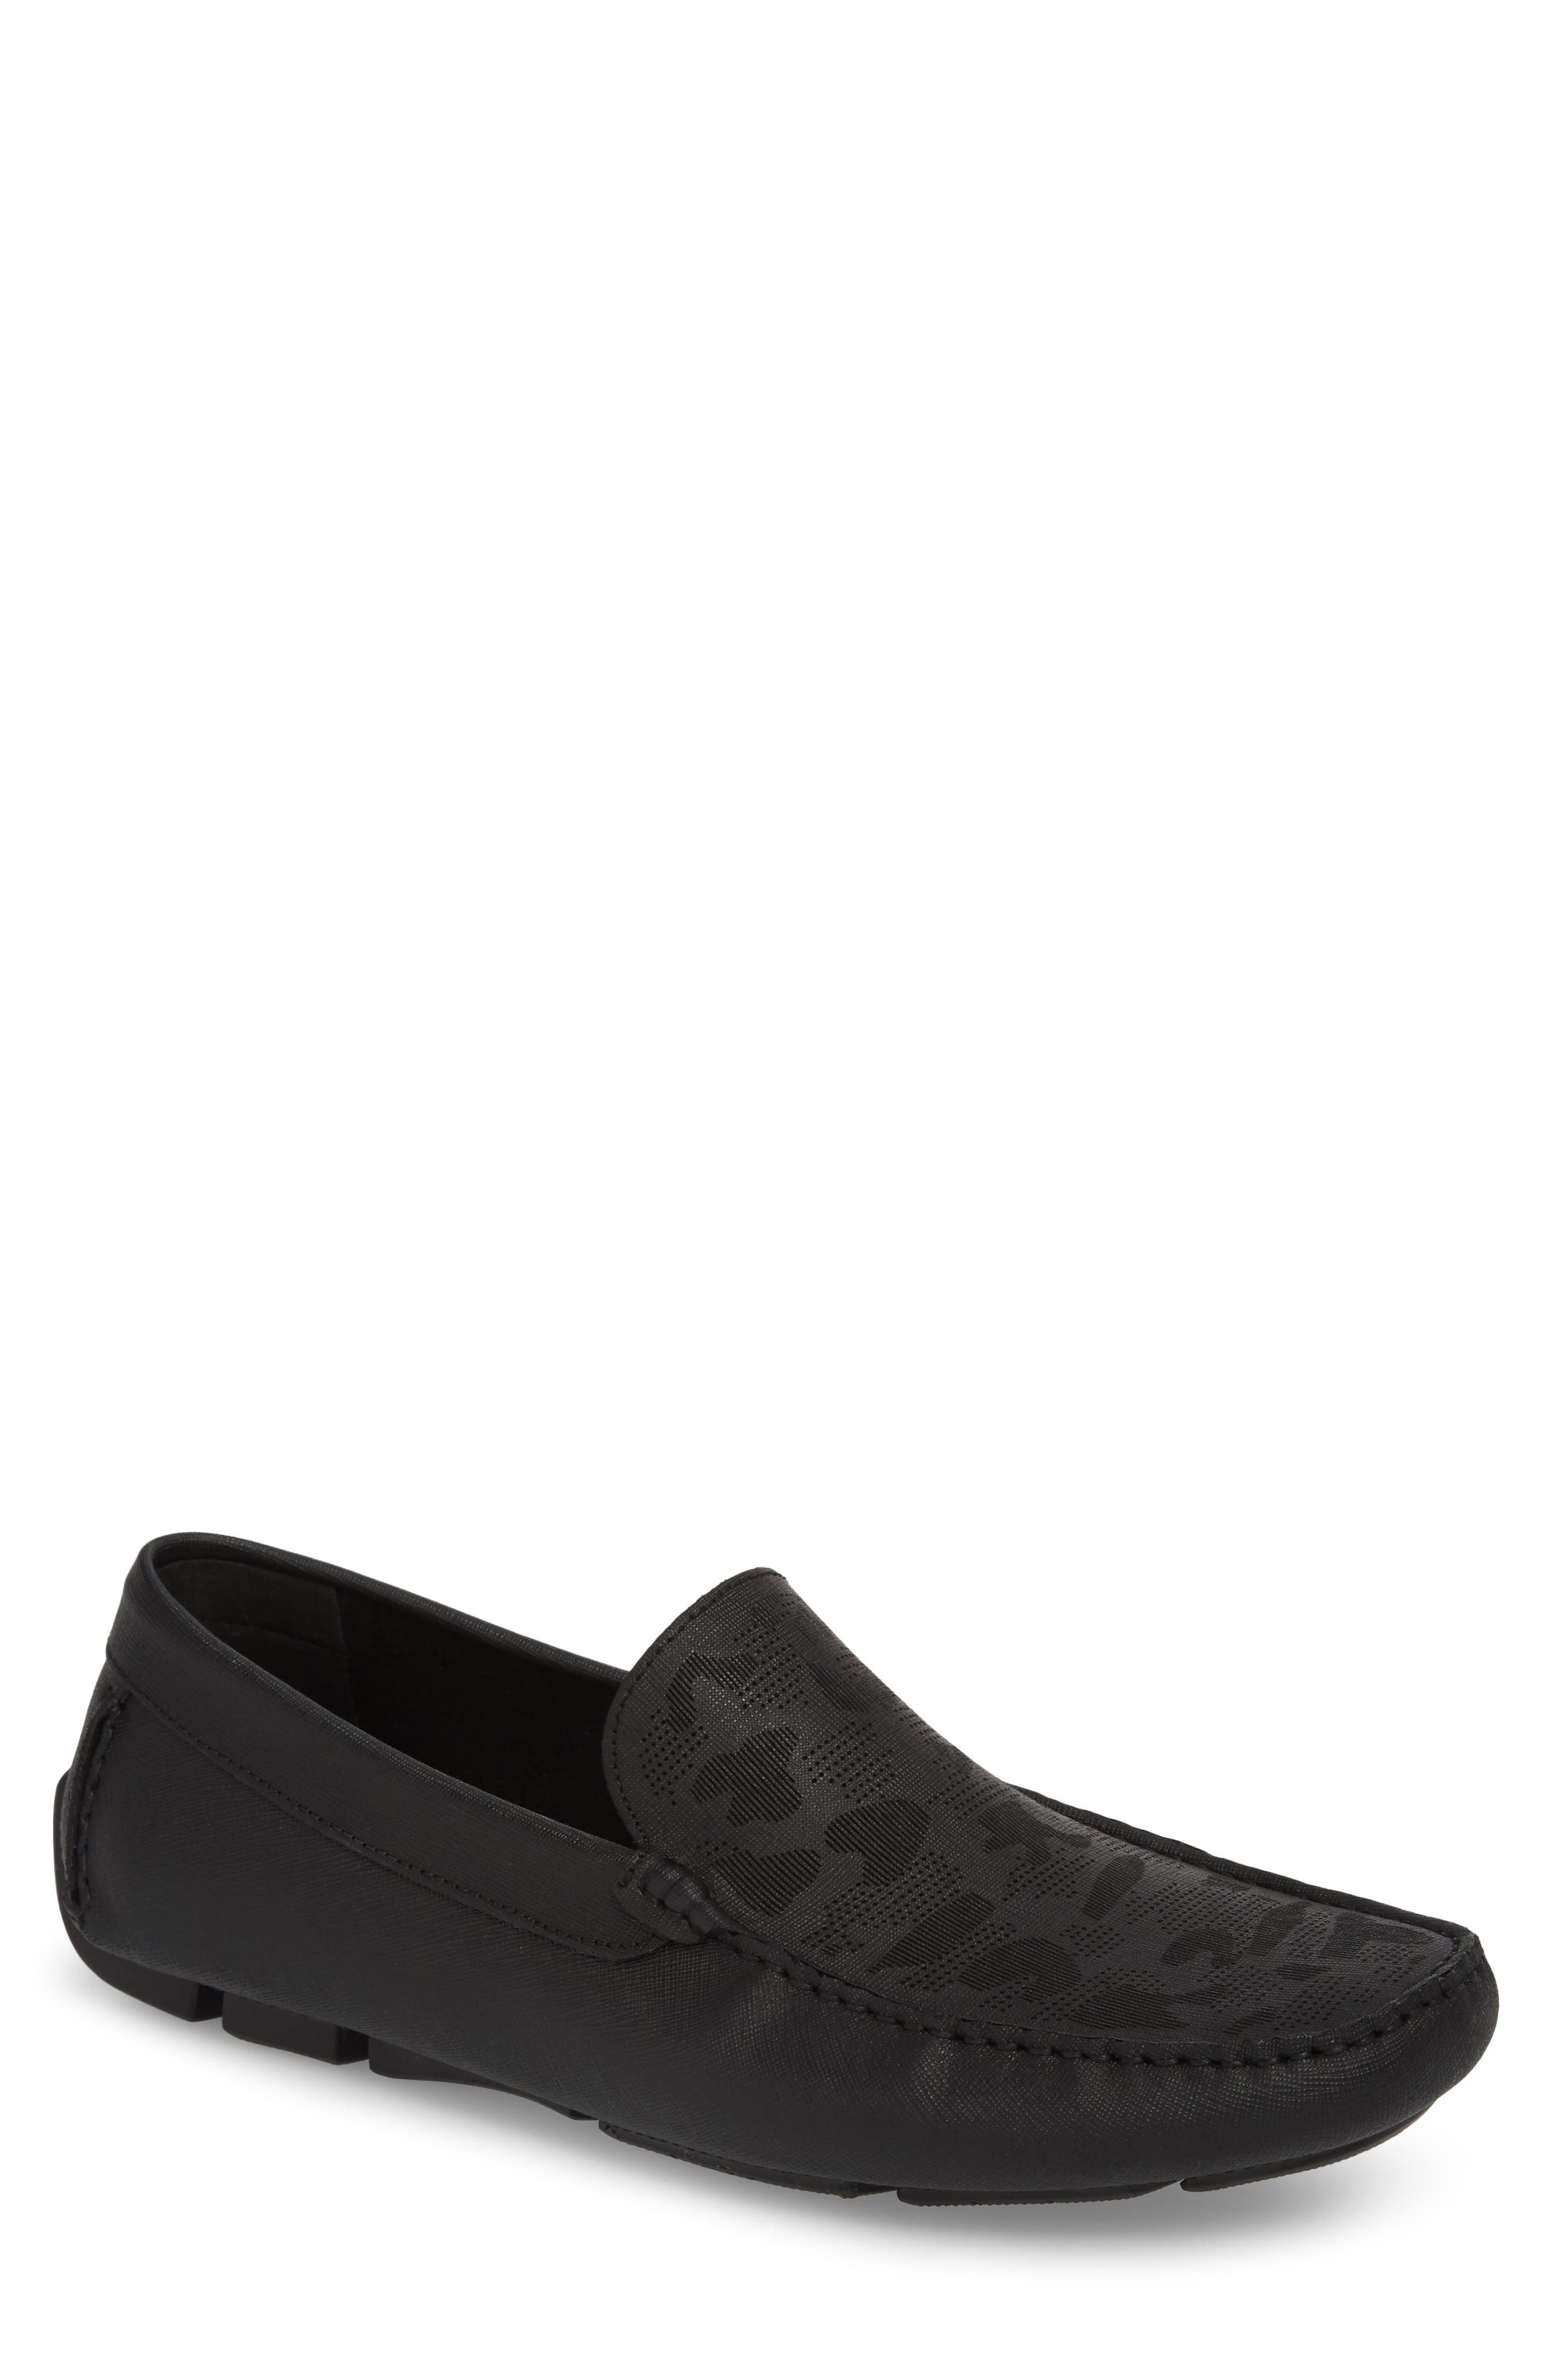 KENNETH COLE NEW YORK,                             Theme Song Driving Shoe,                             Main thumbnail 1, color,                             001